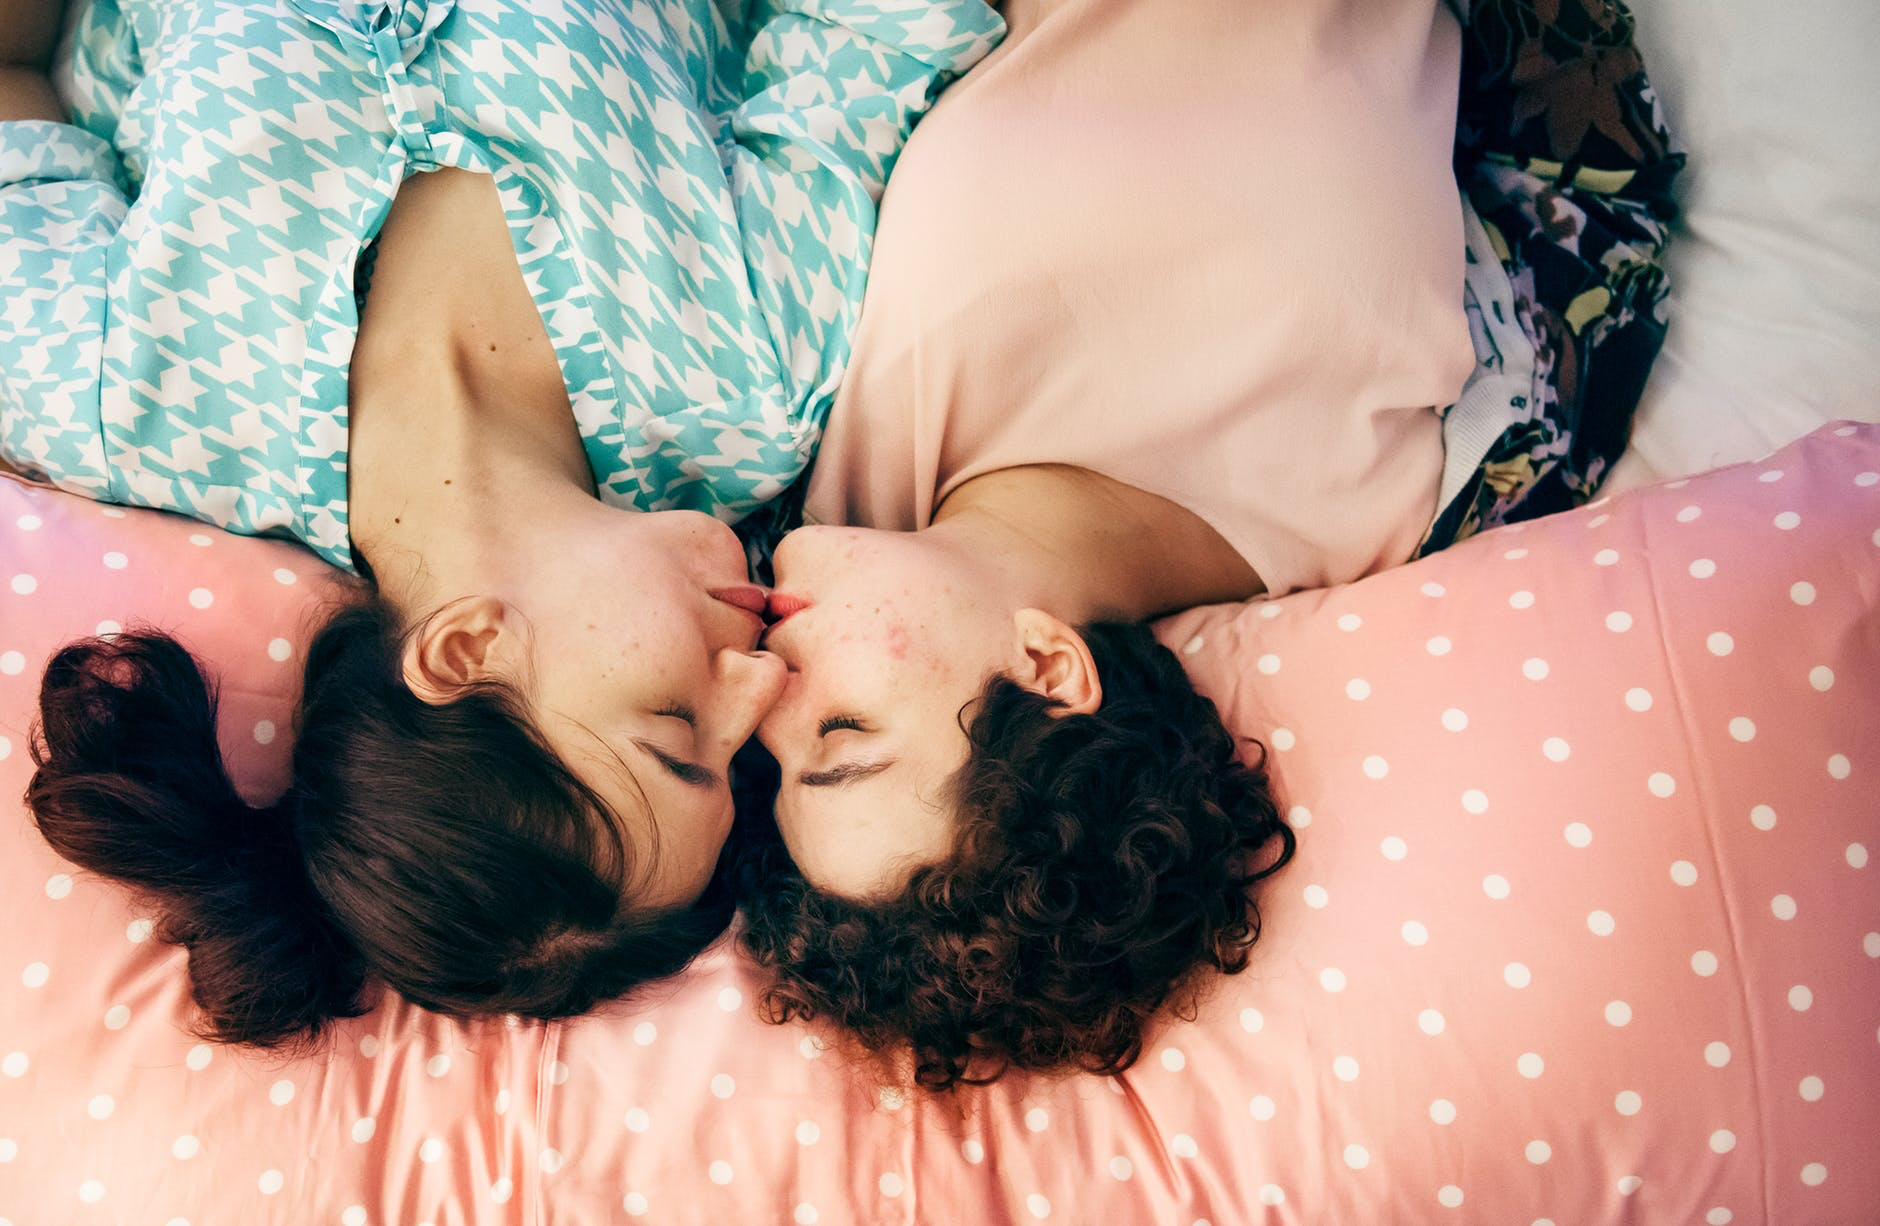 Two people kiss lying down